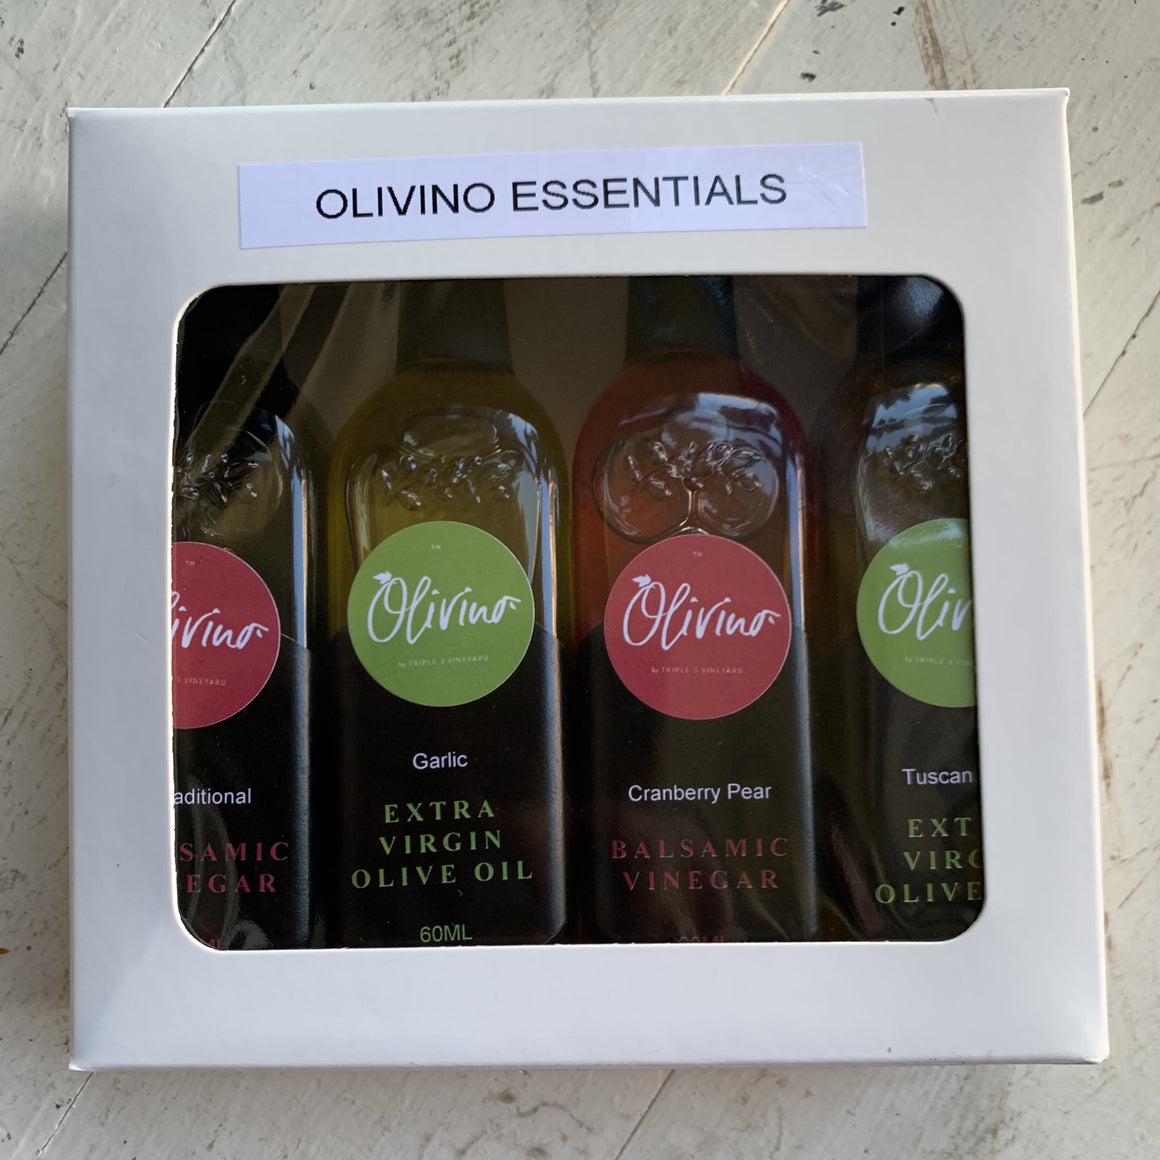 Olivino Essentials